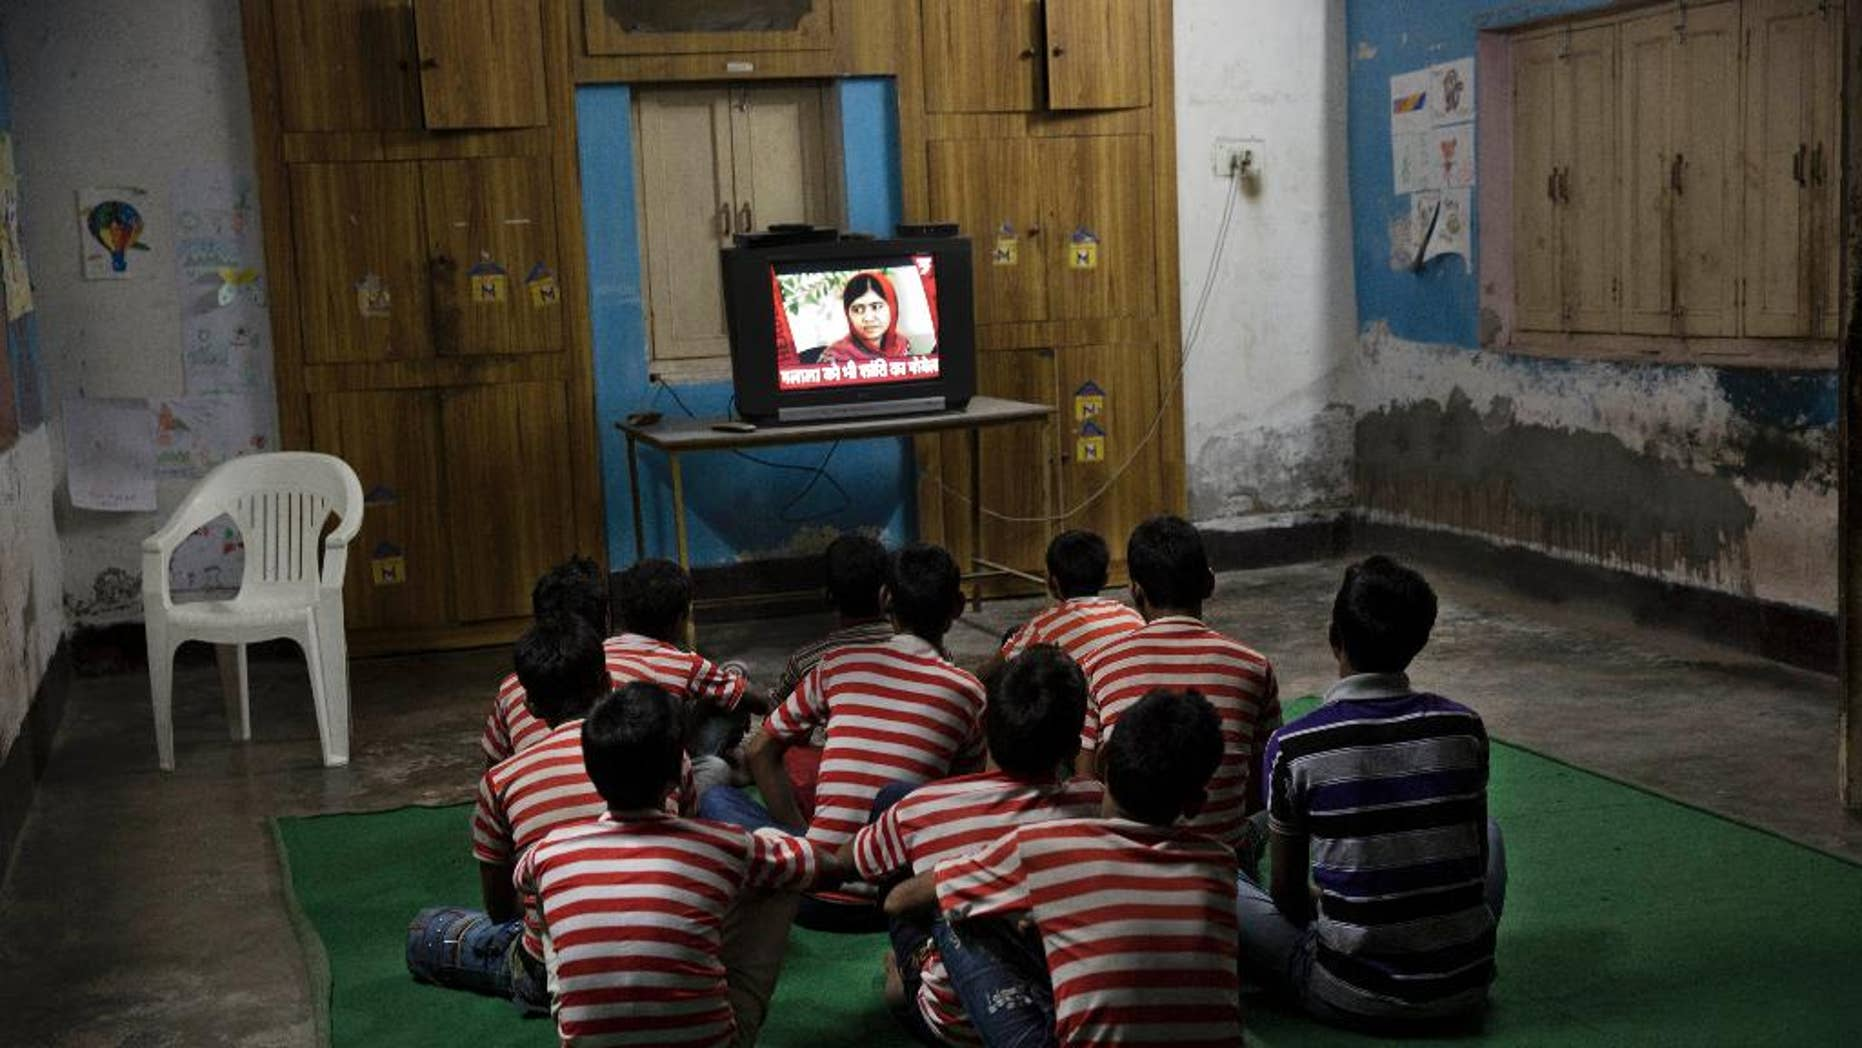 Children rescued by the workers of the NGO Bachpan Bachao Andolan or Save Childhood Movement, run by Kailash Satyarthi, watch the news of Pakistan's Malala Yousafzai on television at the Mukti Ashram in New Delhi, India, Friday, Oct. 10, 2014. Satyarthi and Malala jointly won the Nobel Peace Prize on Friday for working to protect children from slavery, extremism and child labor at great risk to their own lives. (AP Photo/Bernat Armangue)